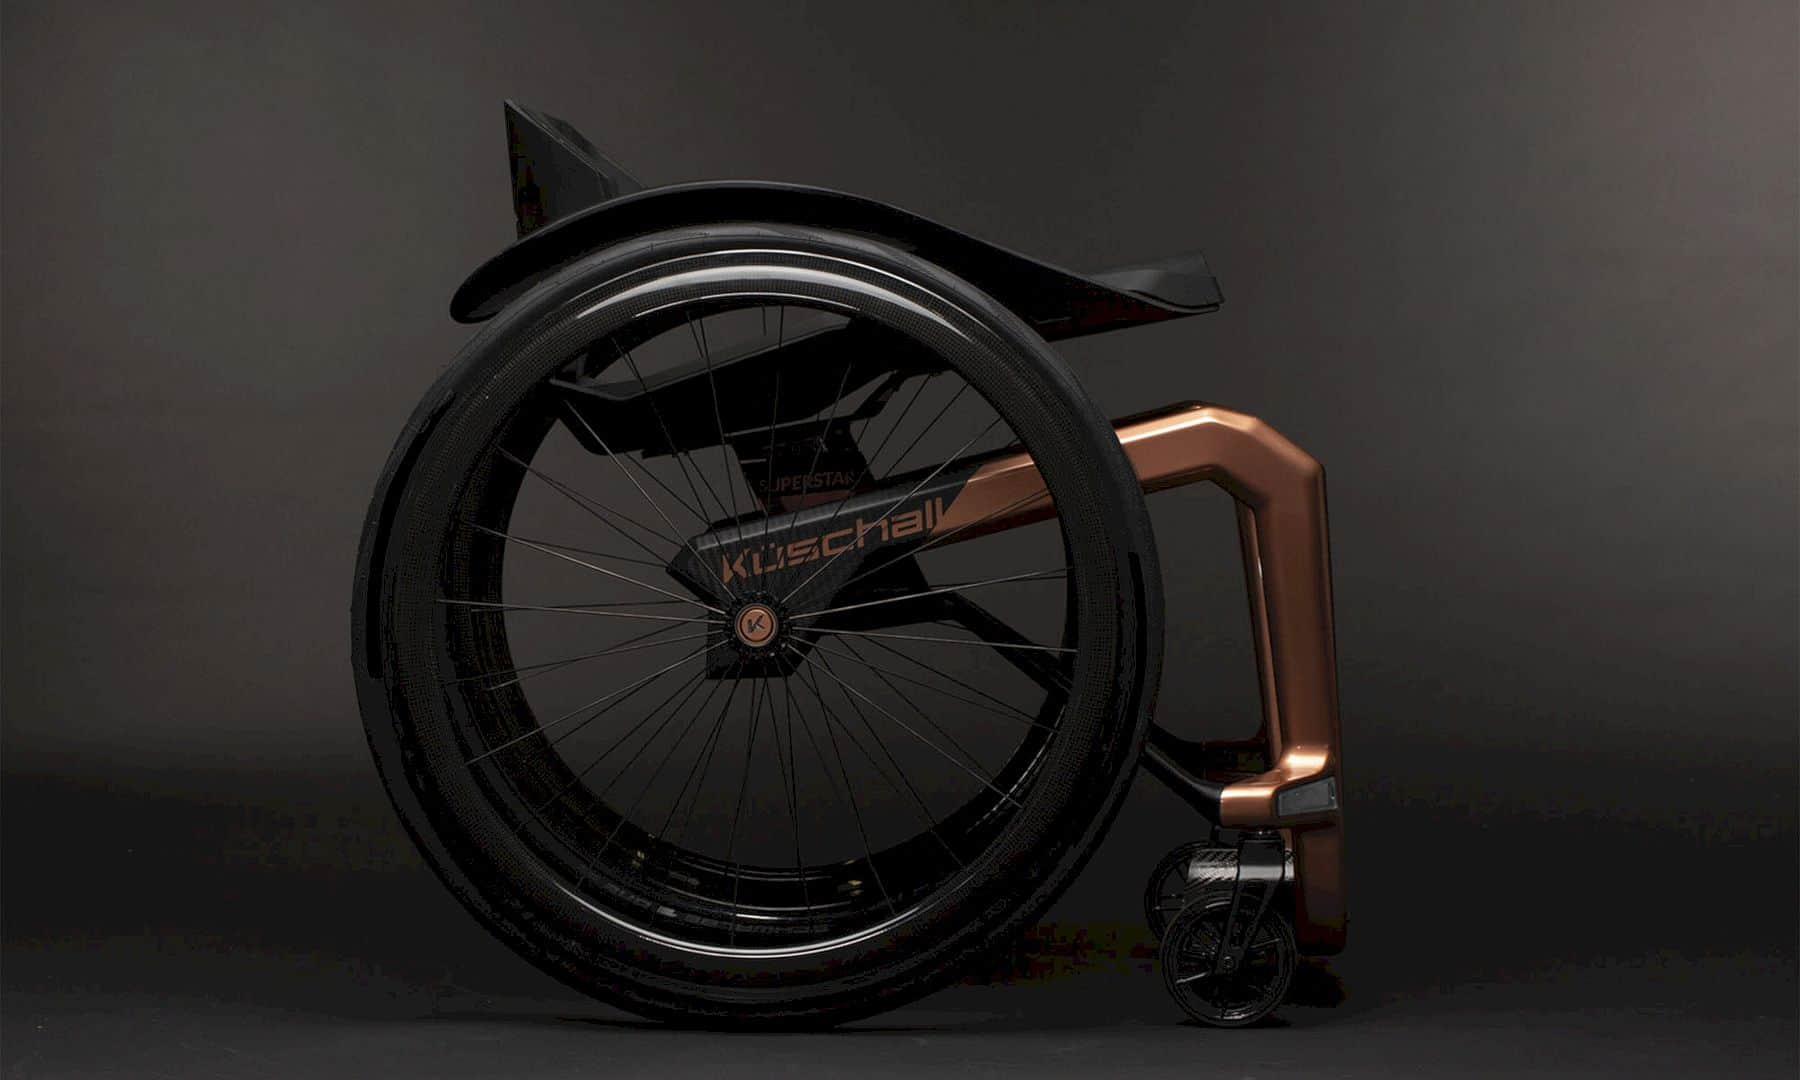 Küschall Superstar Wheelchair 7